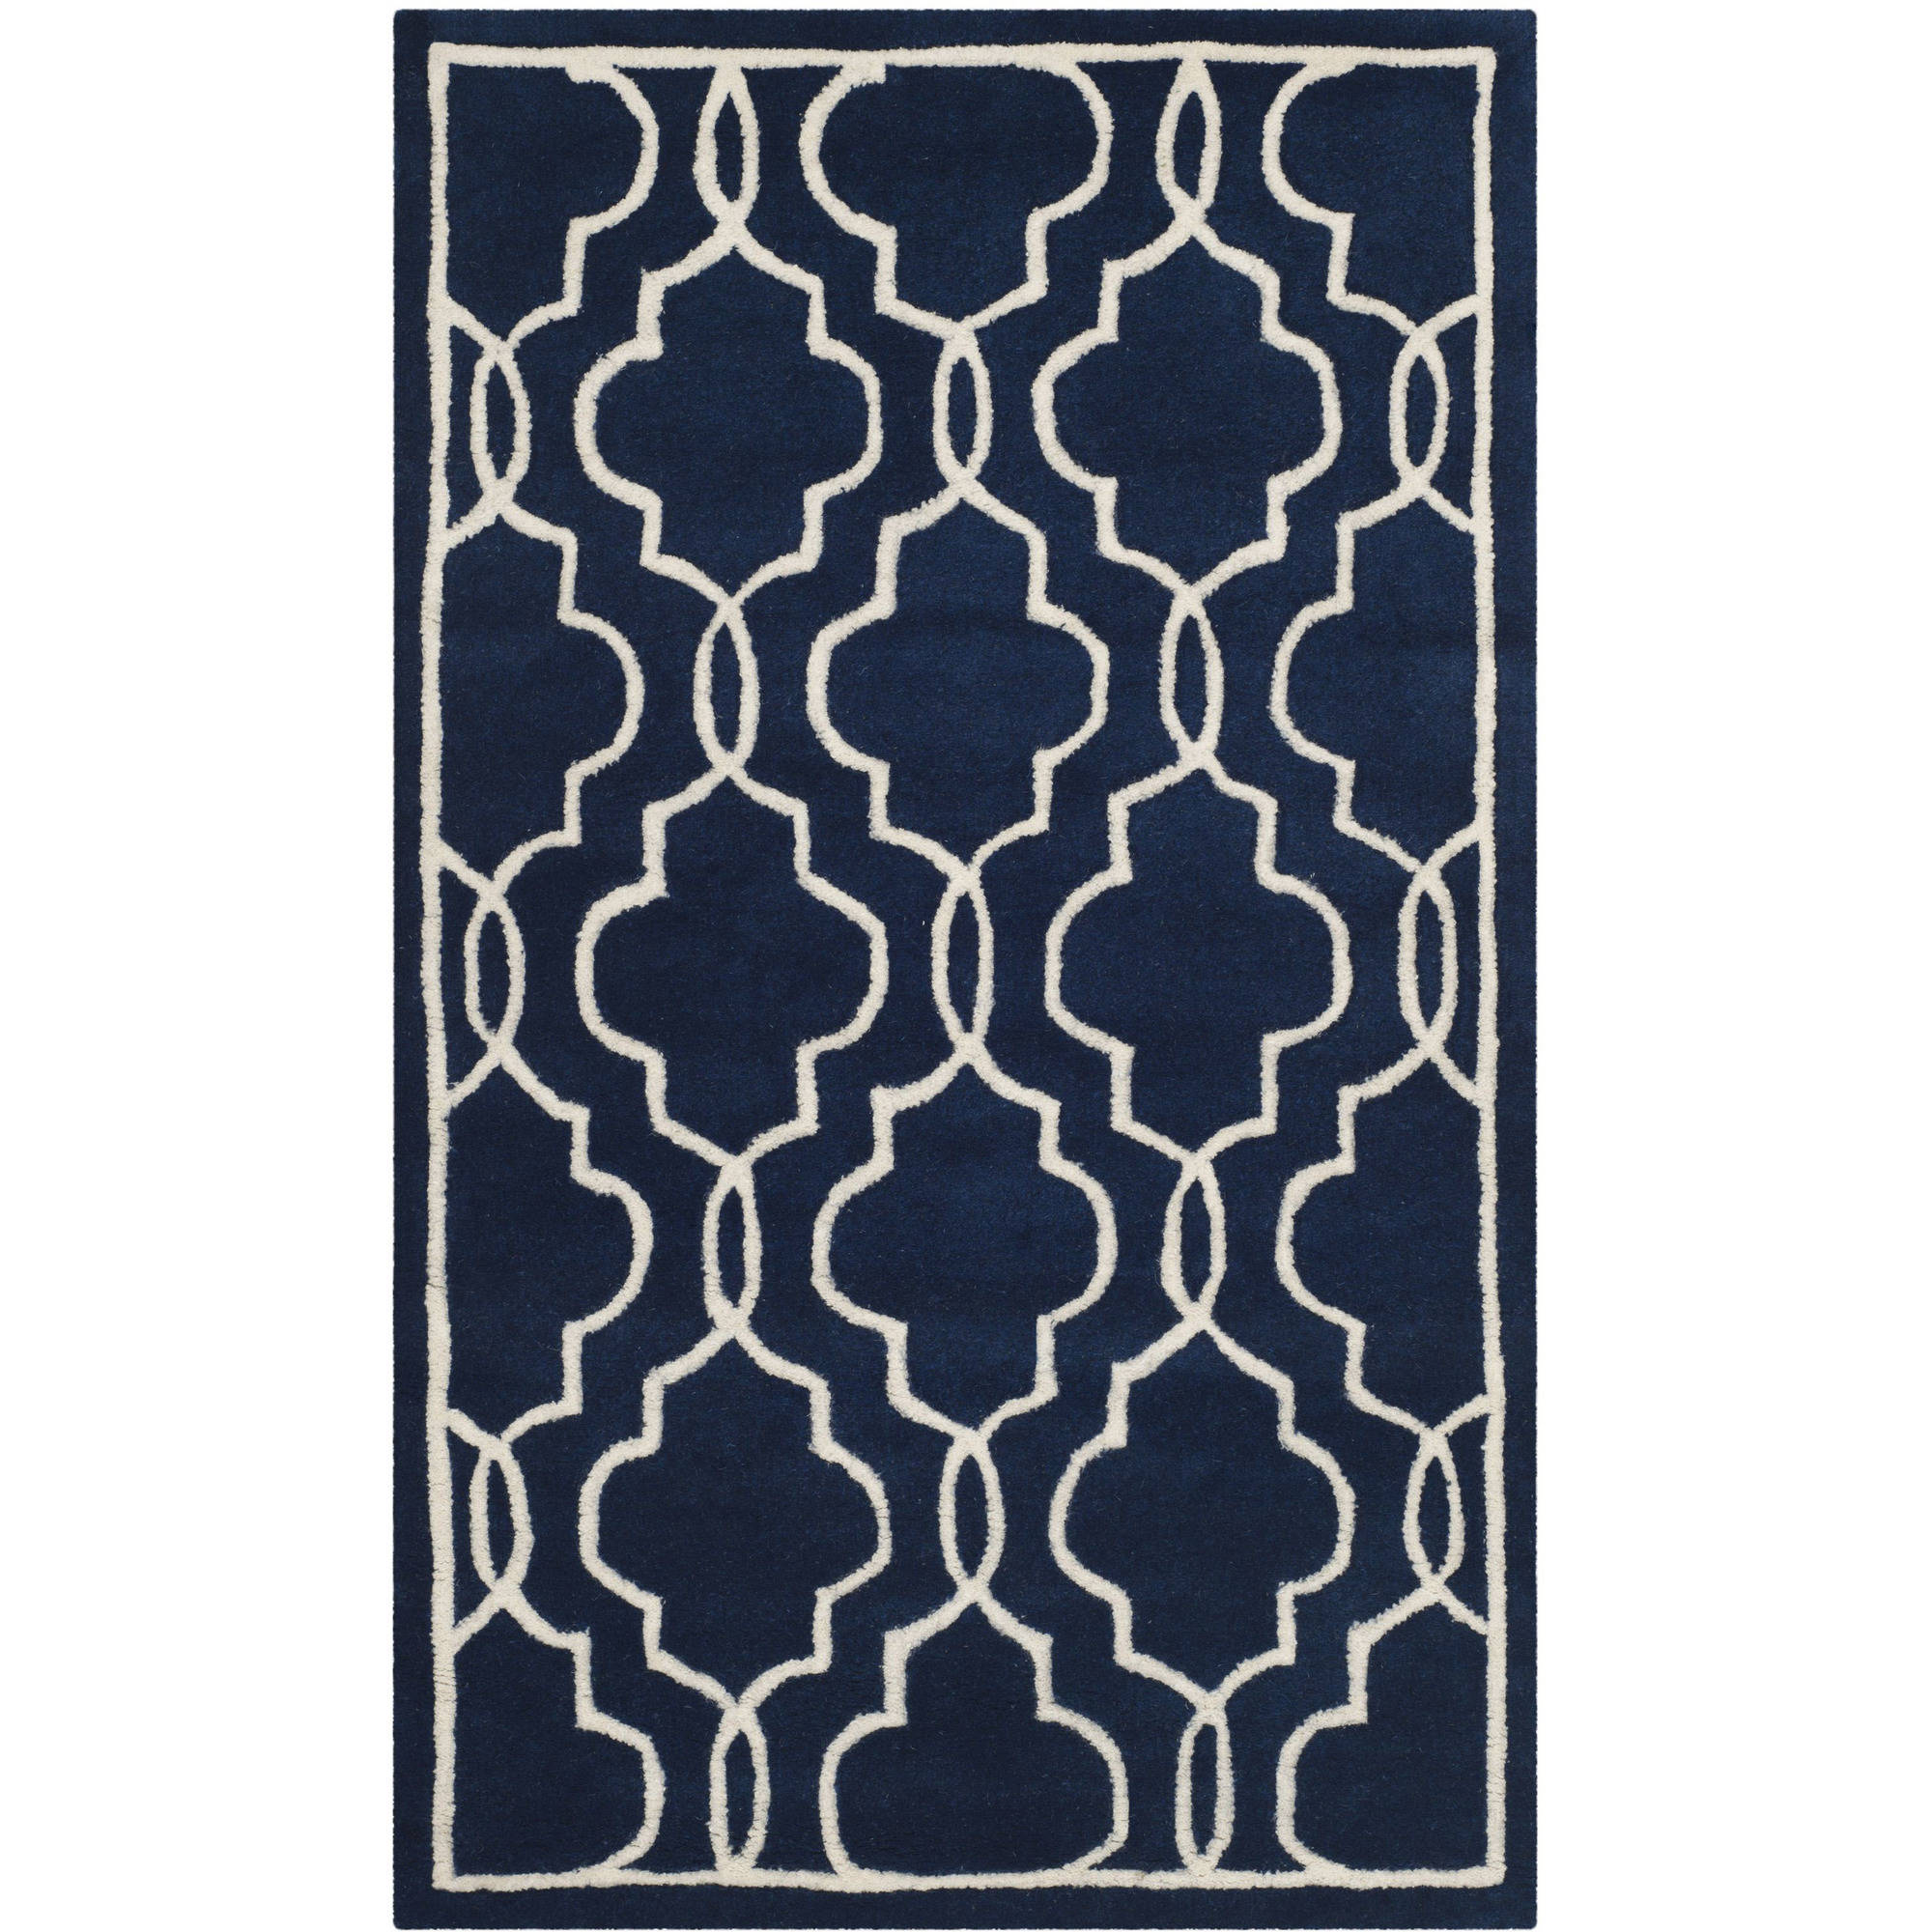 Safavieh Chatham Jaymz Hand Tufted Wool Area Rug